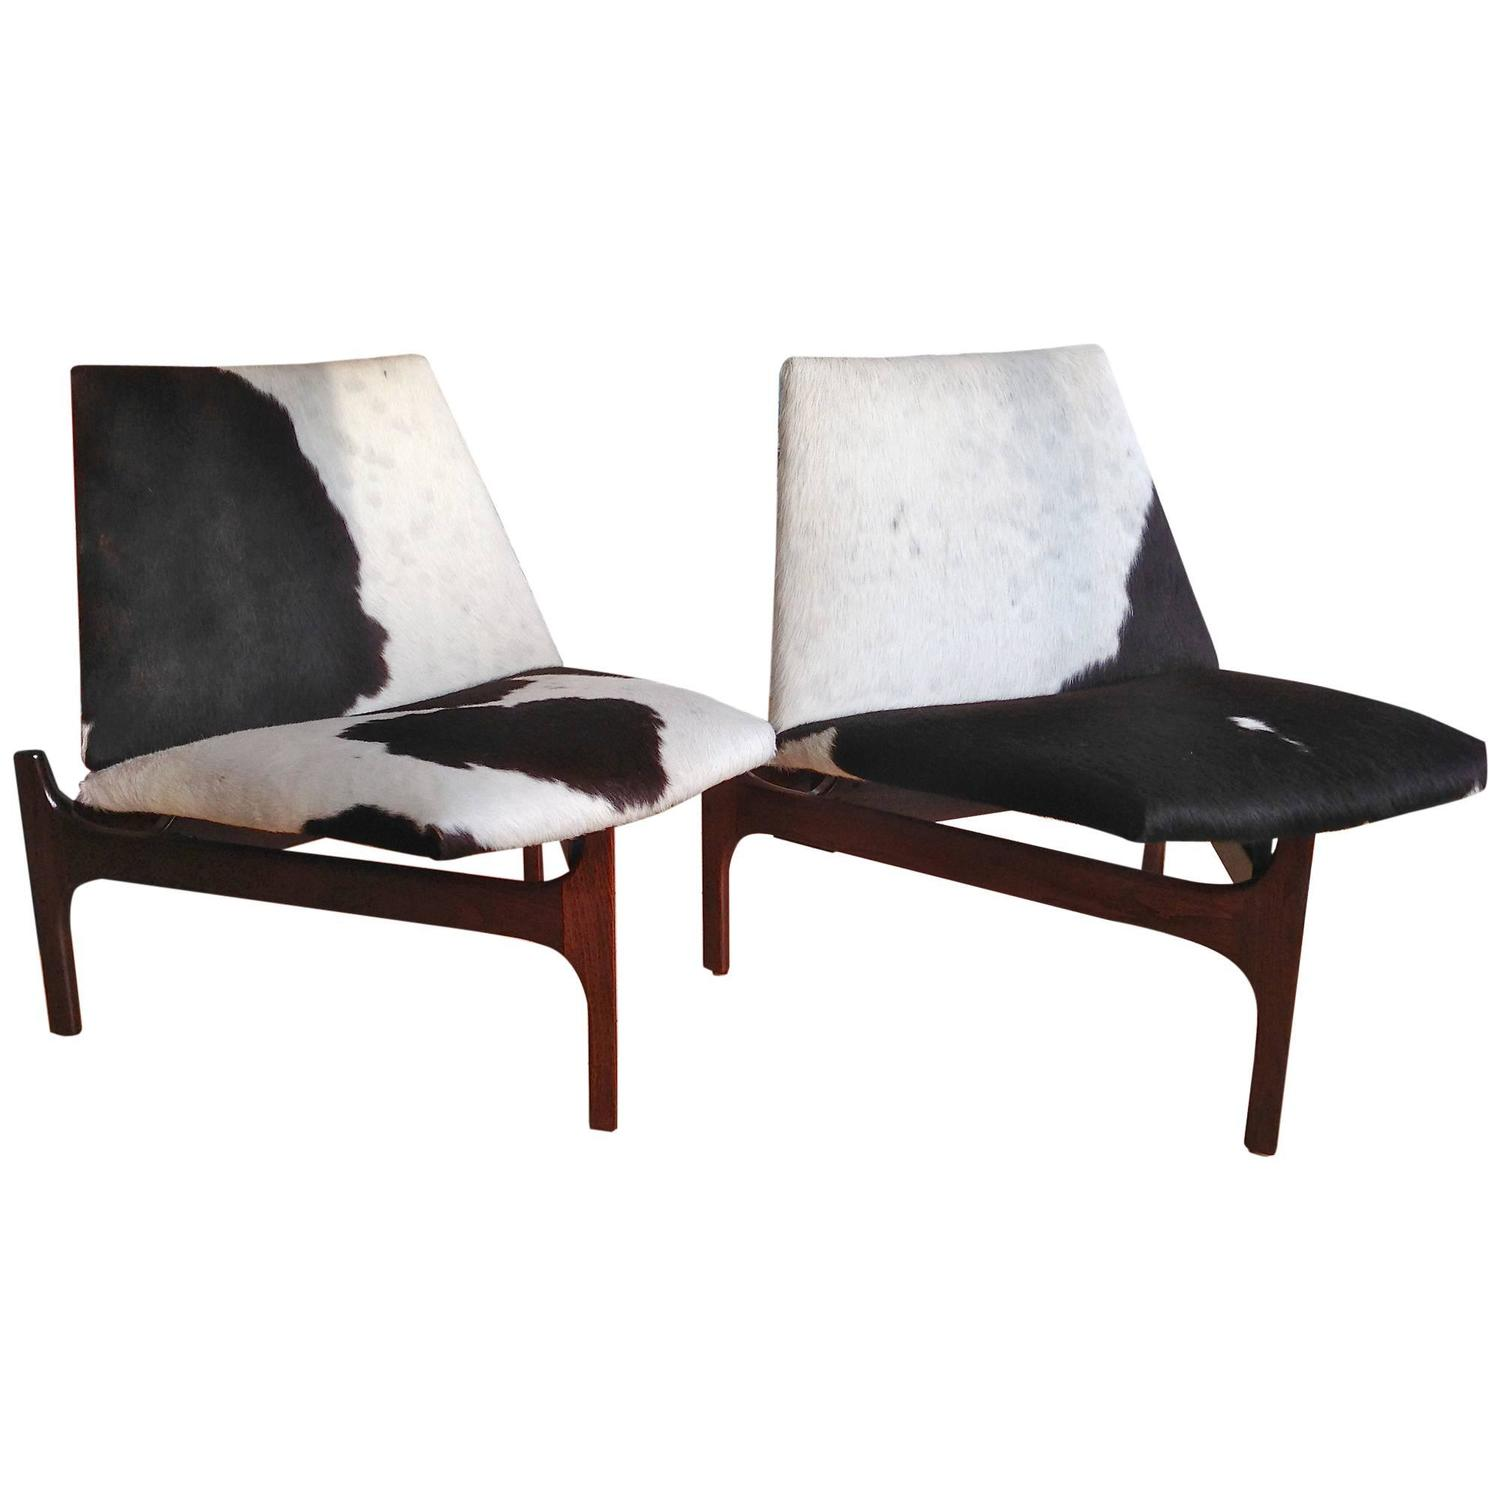 cowhide chairs modern round microfiber chair sculptural low lounge with upholstery for